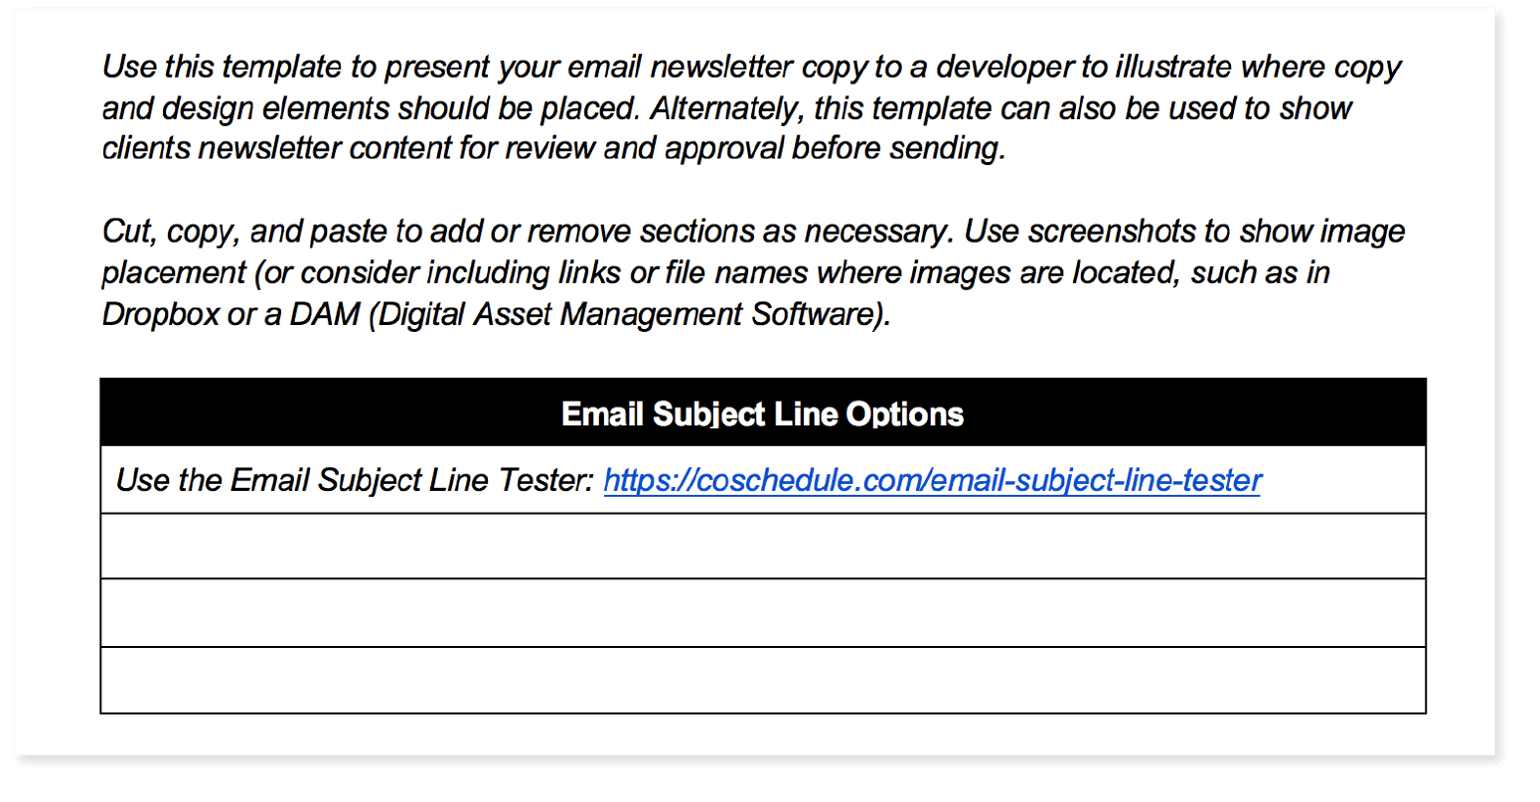 Example from the newsletter template